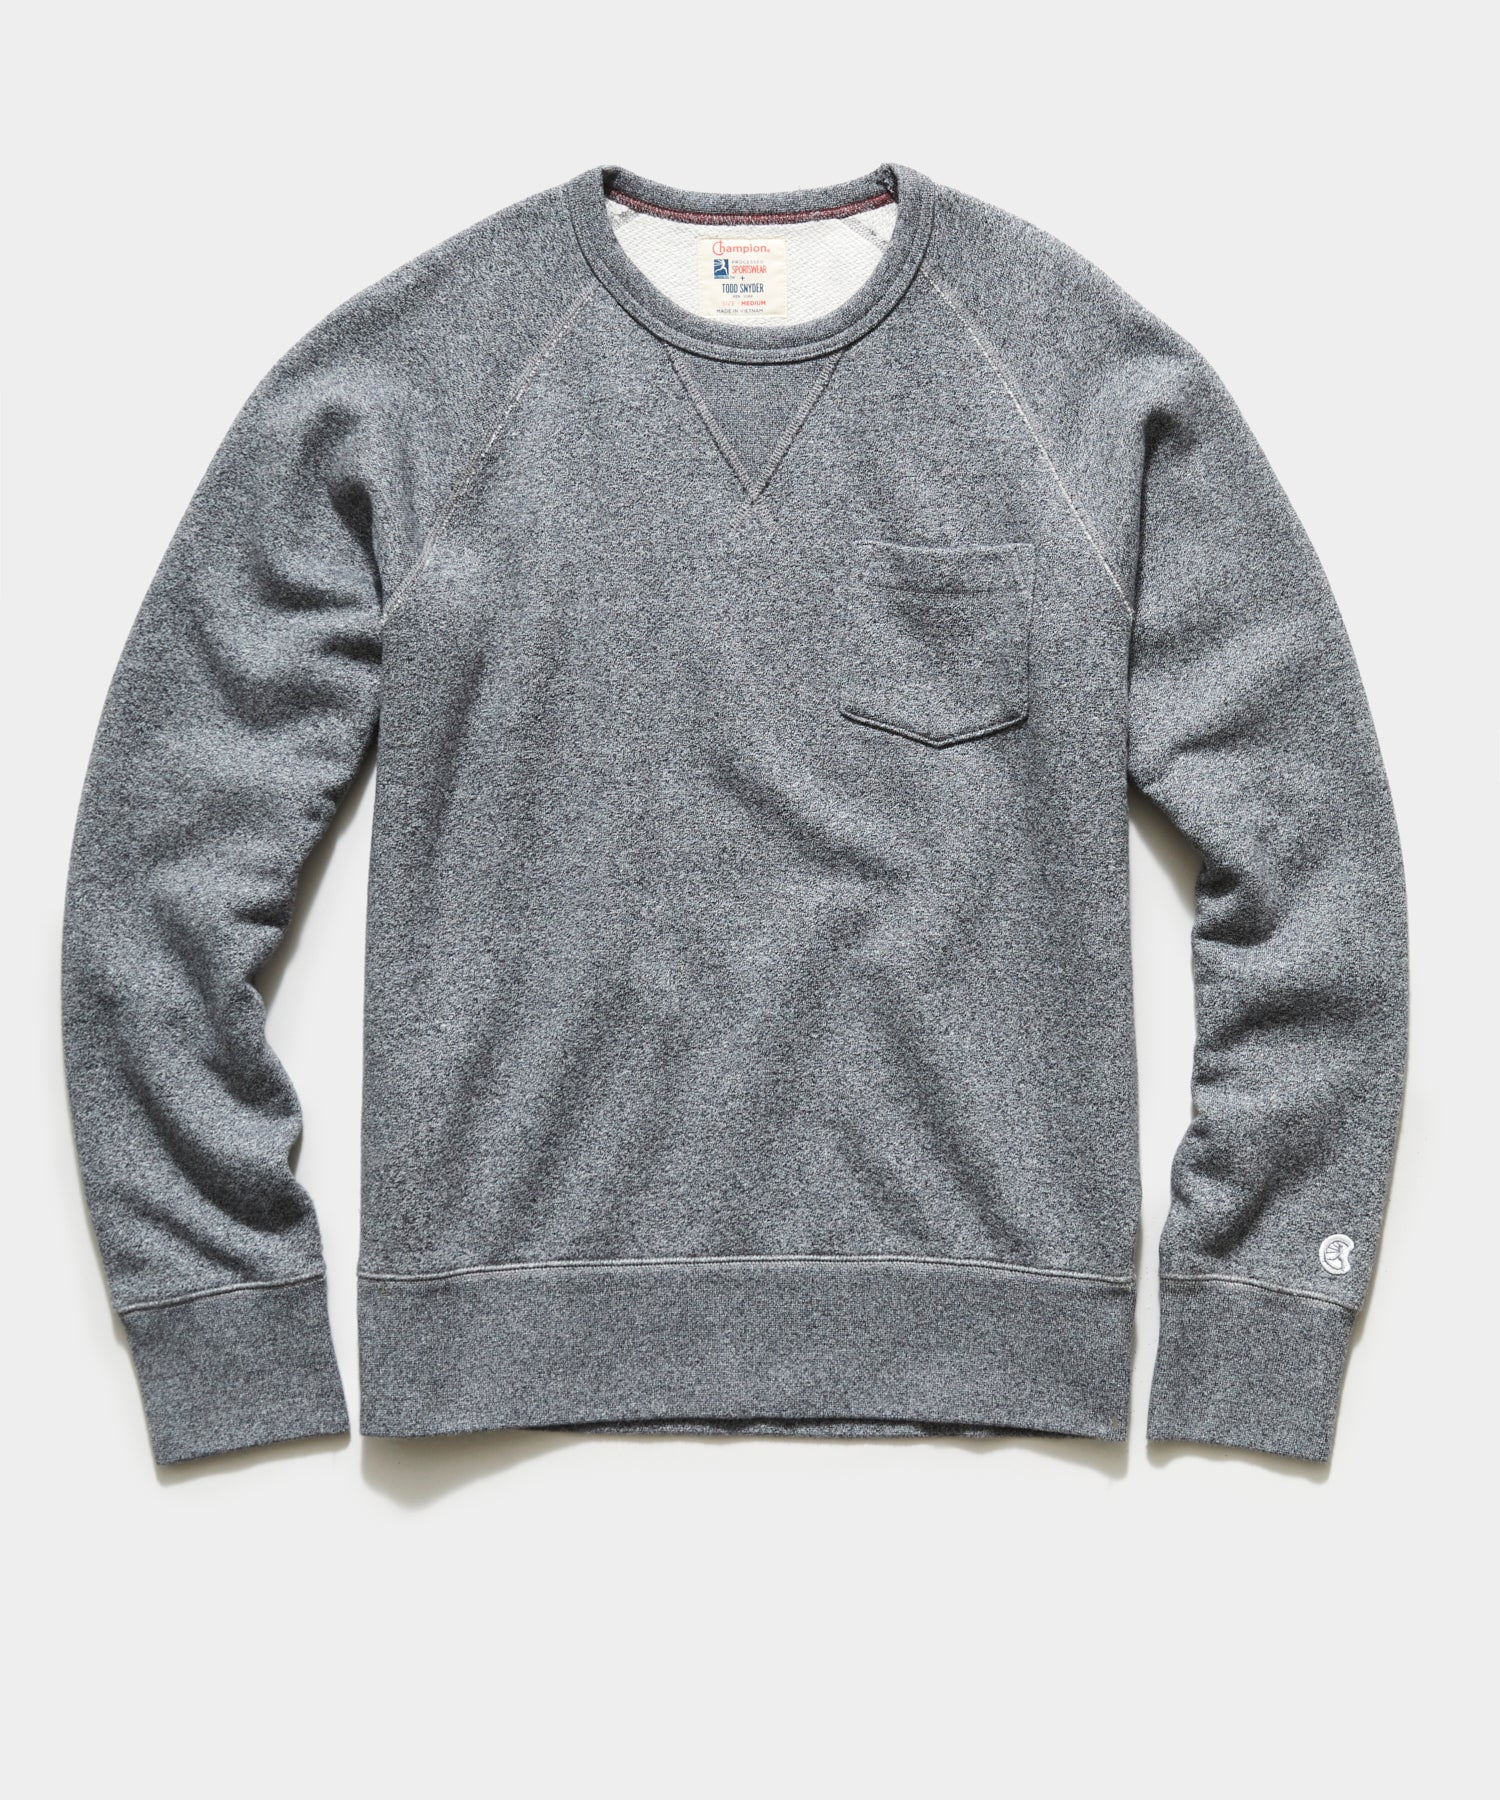 Midweight Pocket Sweatshirt in Salt and Pepper